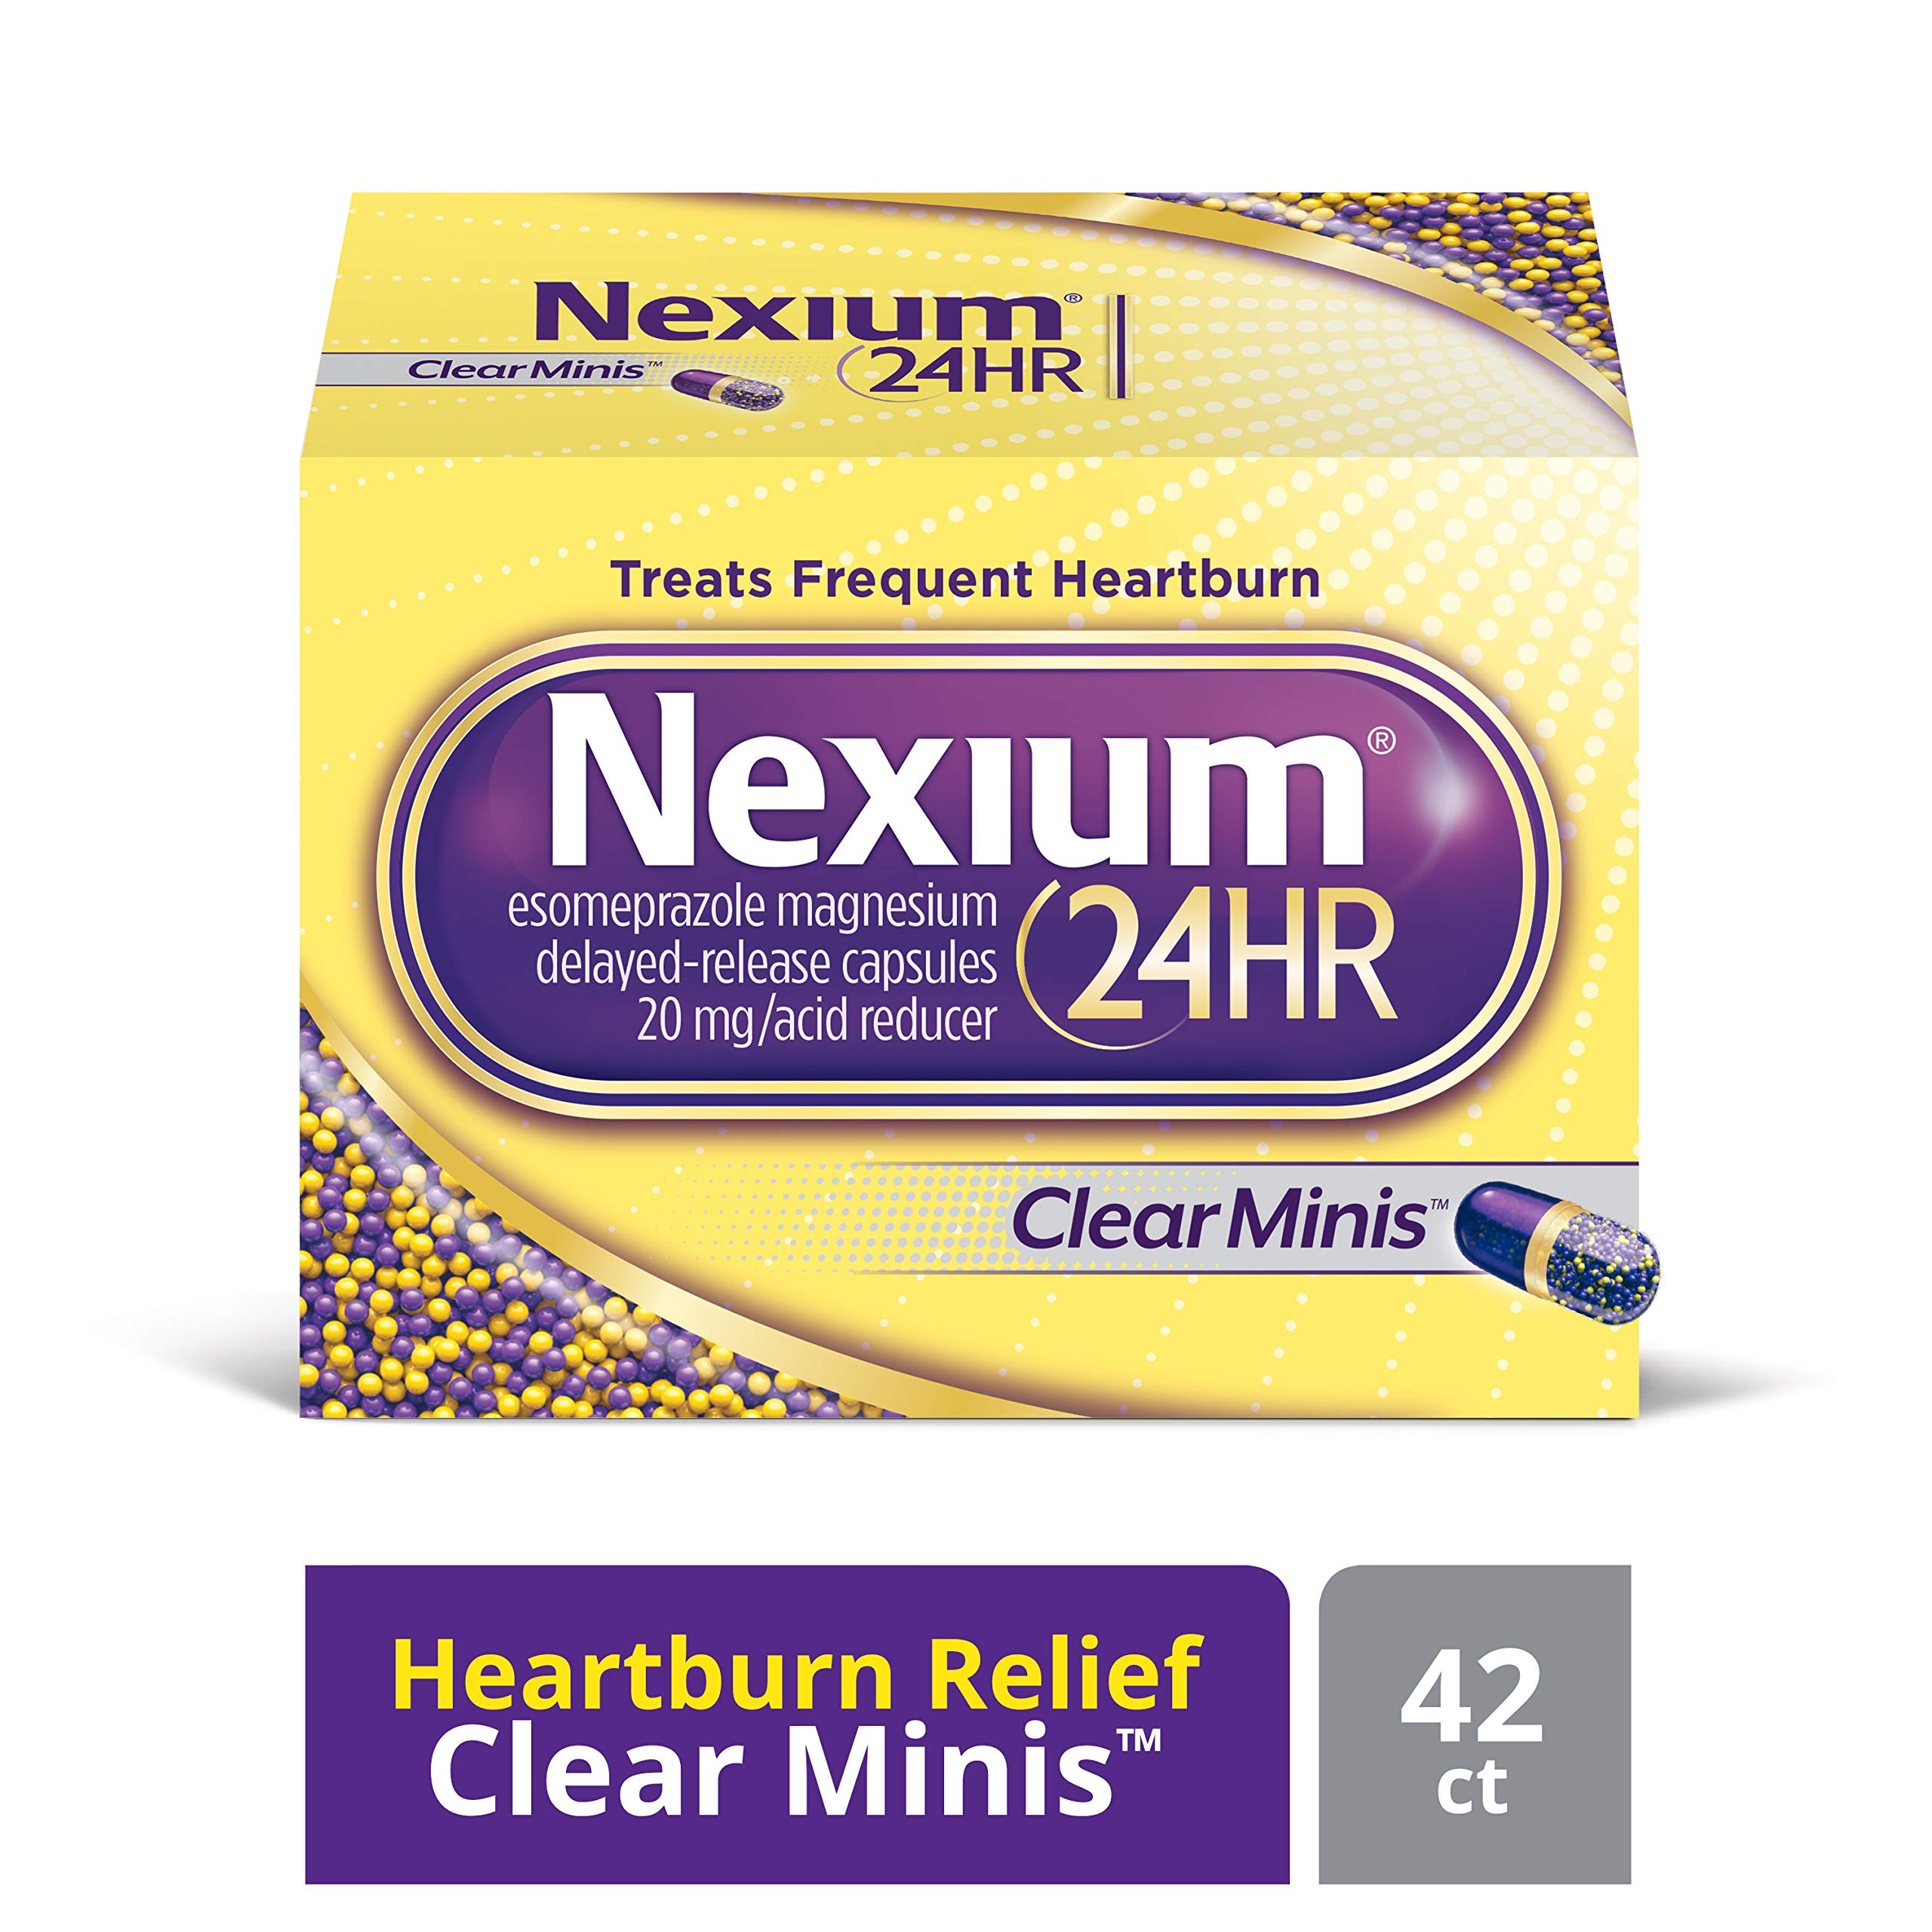 Nexium 24HR (42 Count, ClearMinis) All-Day, All-Night Protection from Frequent Heartburn Medicine with Esomeprazole Magnesium 20mg Acid Reducer, 38% Smaller Capsule by Nexium